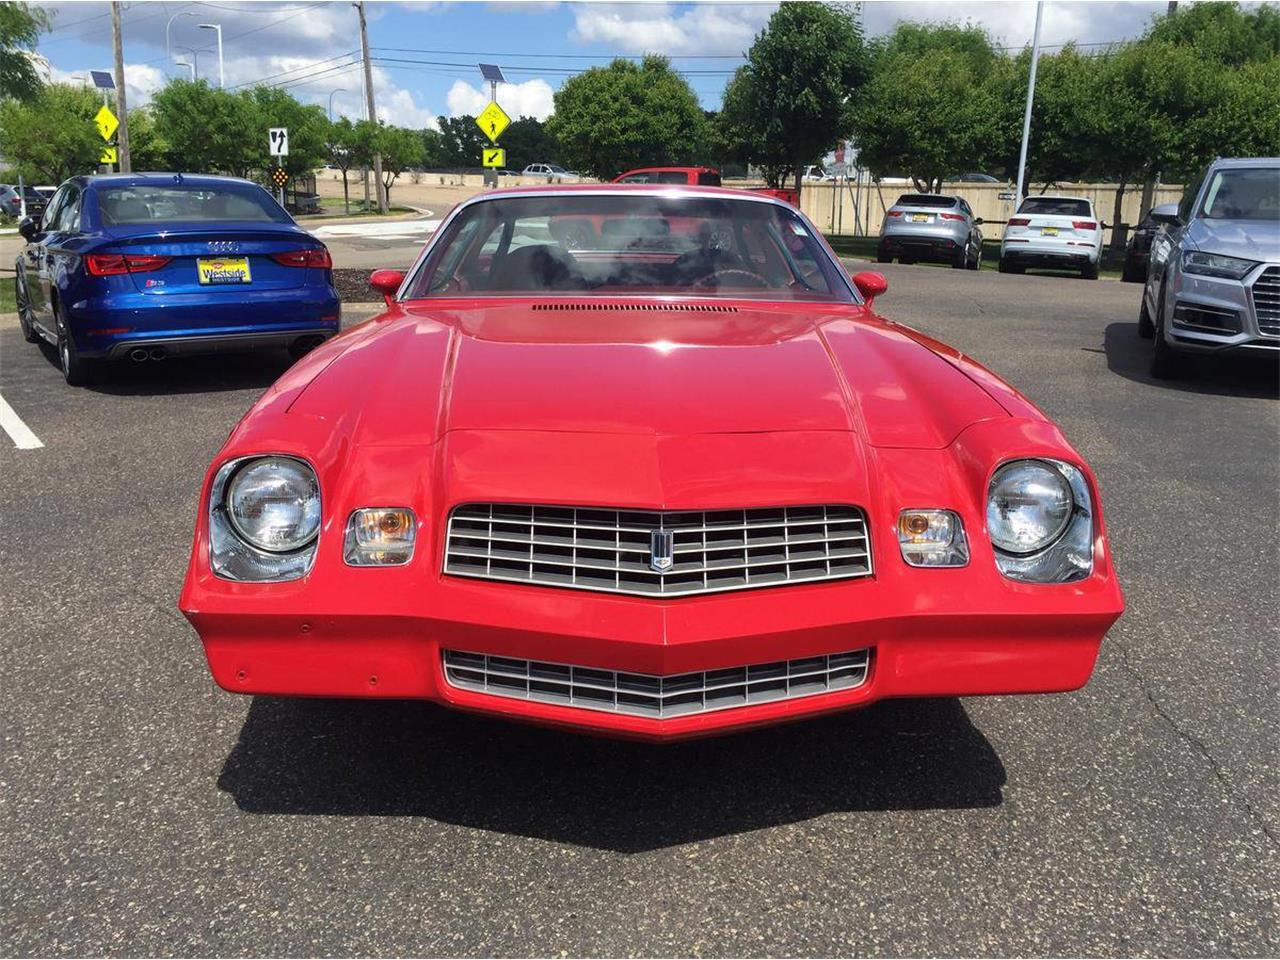 Large Picture of 1978 Camaro located in Roseville Minnesota Auction Vehicle - QBVU